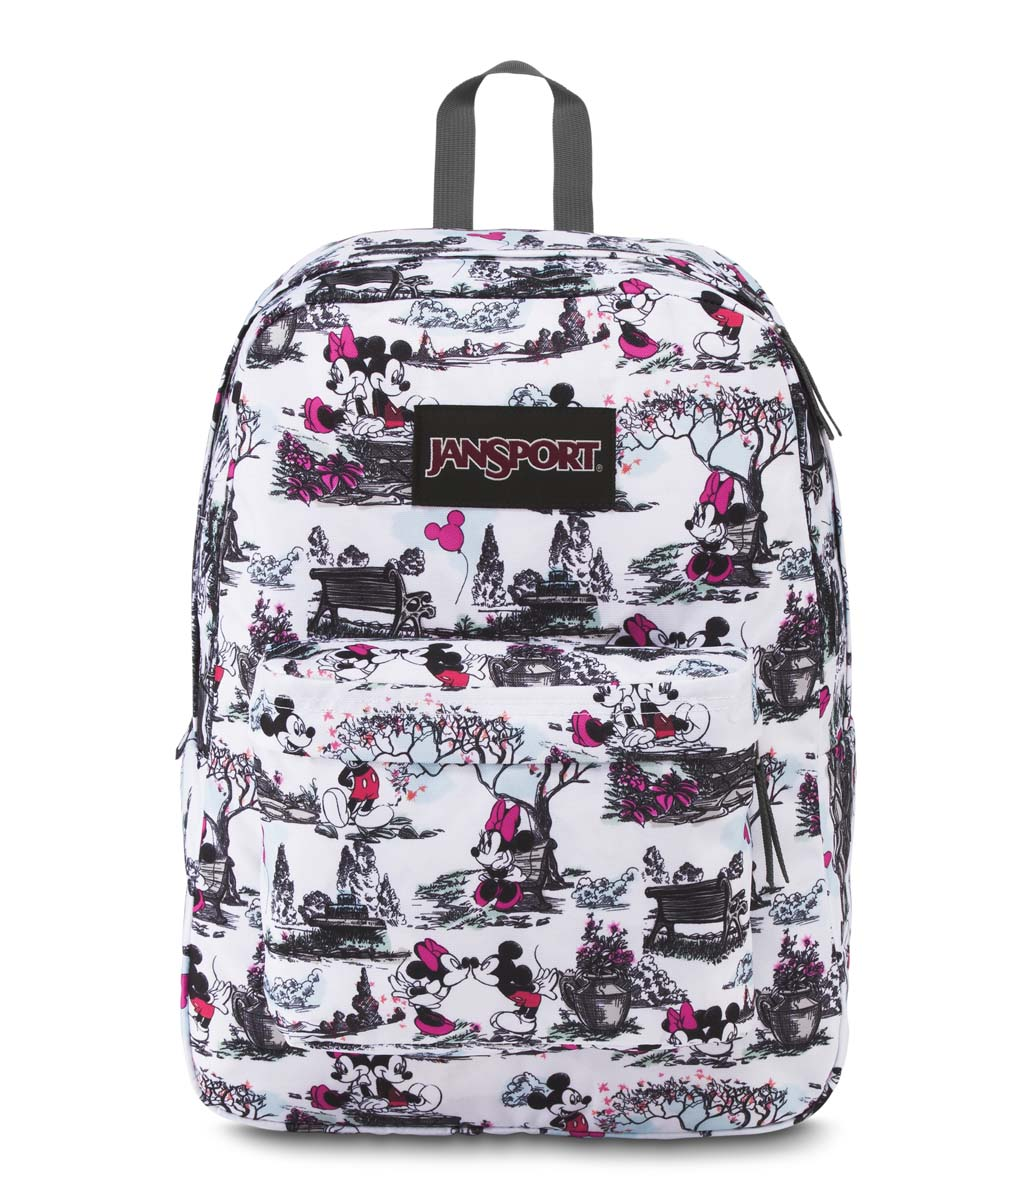 74c758da9e0 JanSport กระเป๋าเป้ รุ่น Superbreak - Disney Day in the Park - DISCOUNT 50%  - The Travel Store   Inspired by LnwShop.com